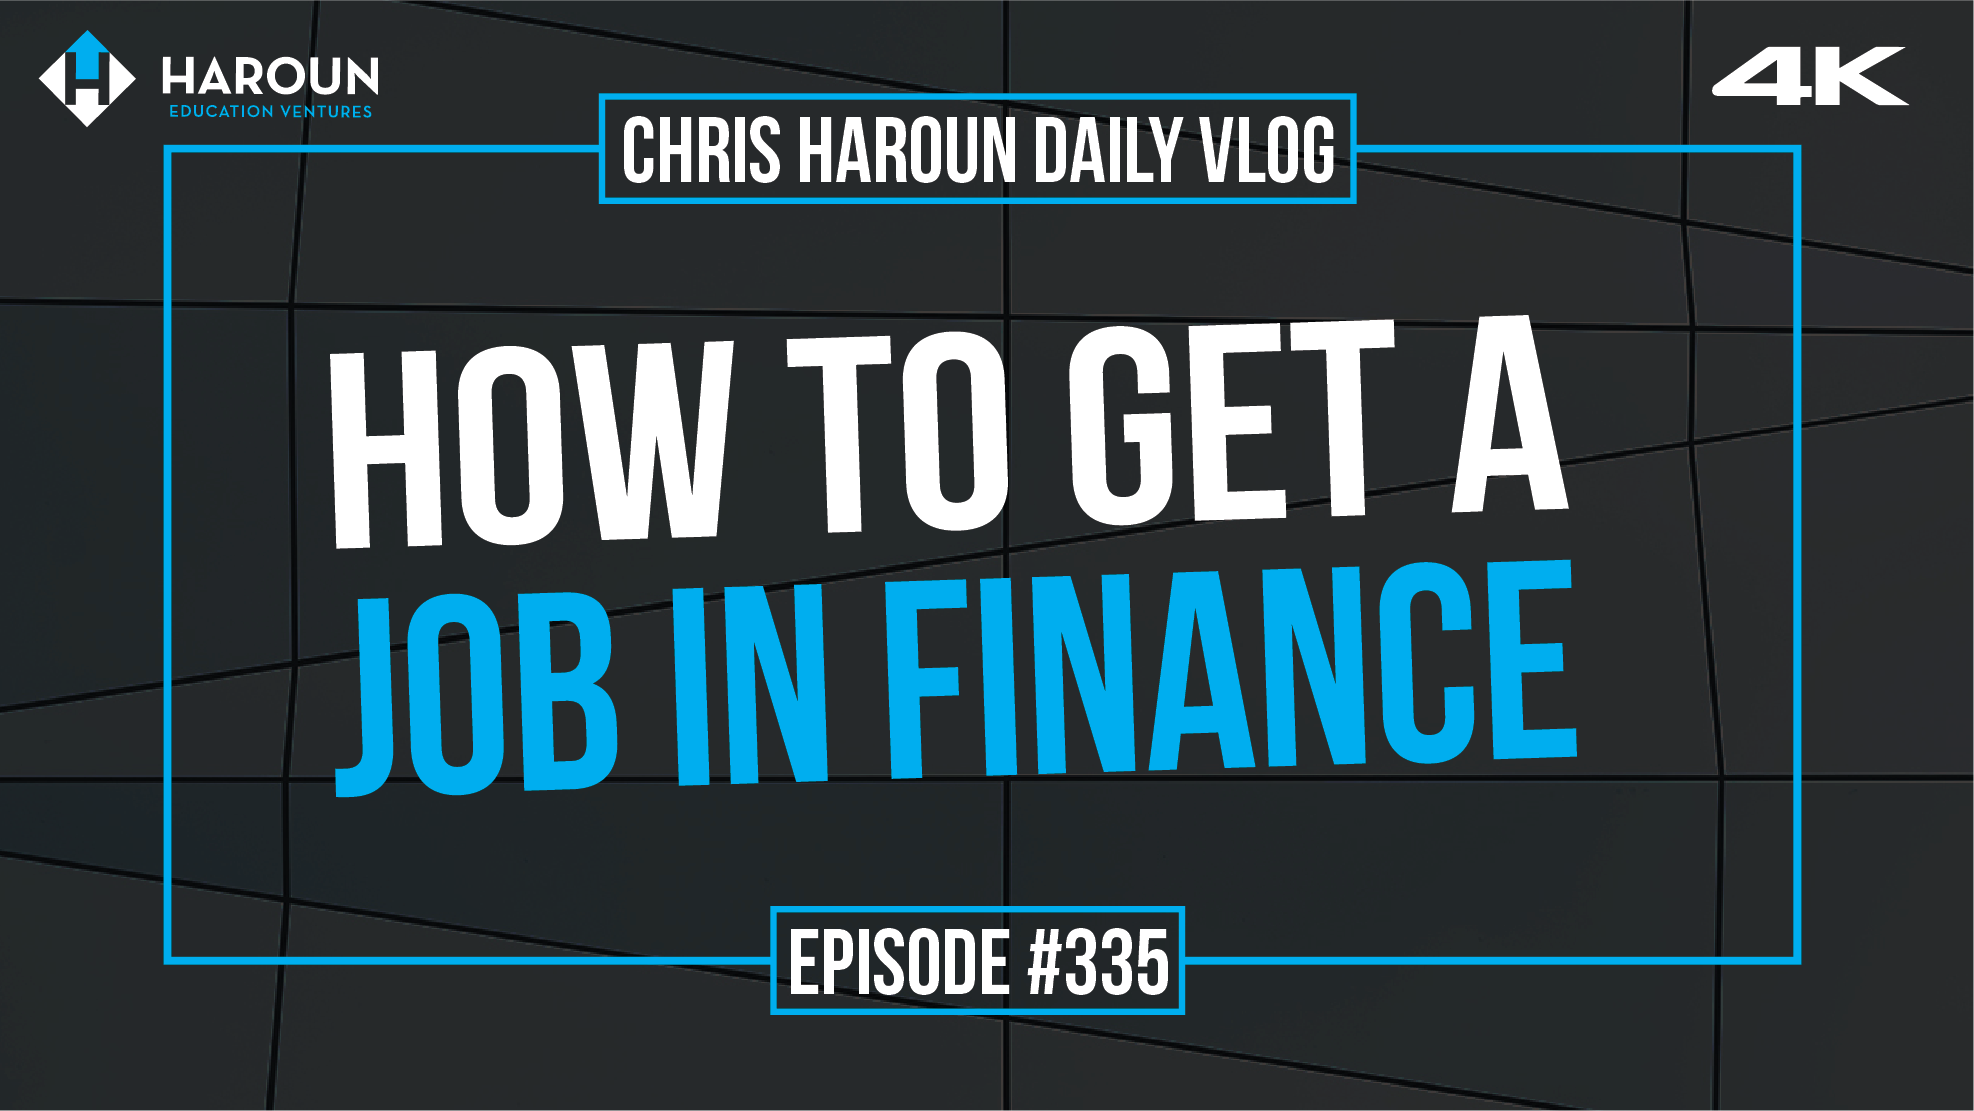 VLOG_335_7_1_2019_How to Get a Job in Finance.png